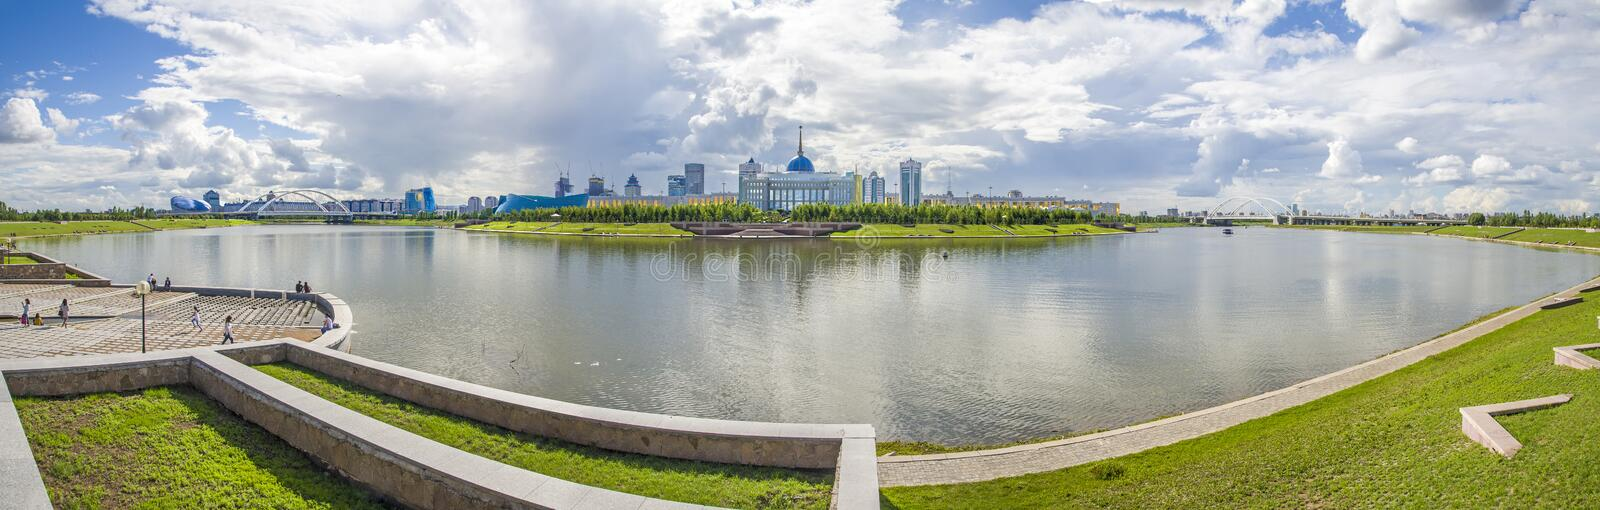 Akorda - the residence of the President of the Republic of Kazakhstan. stock image